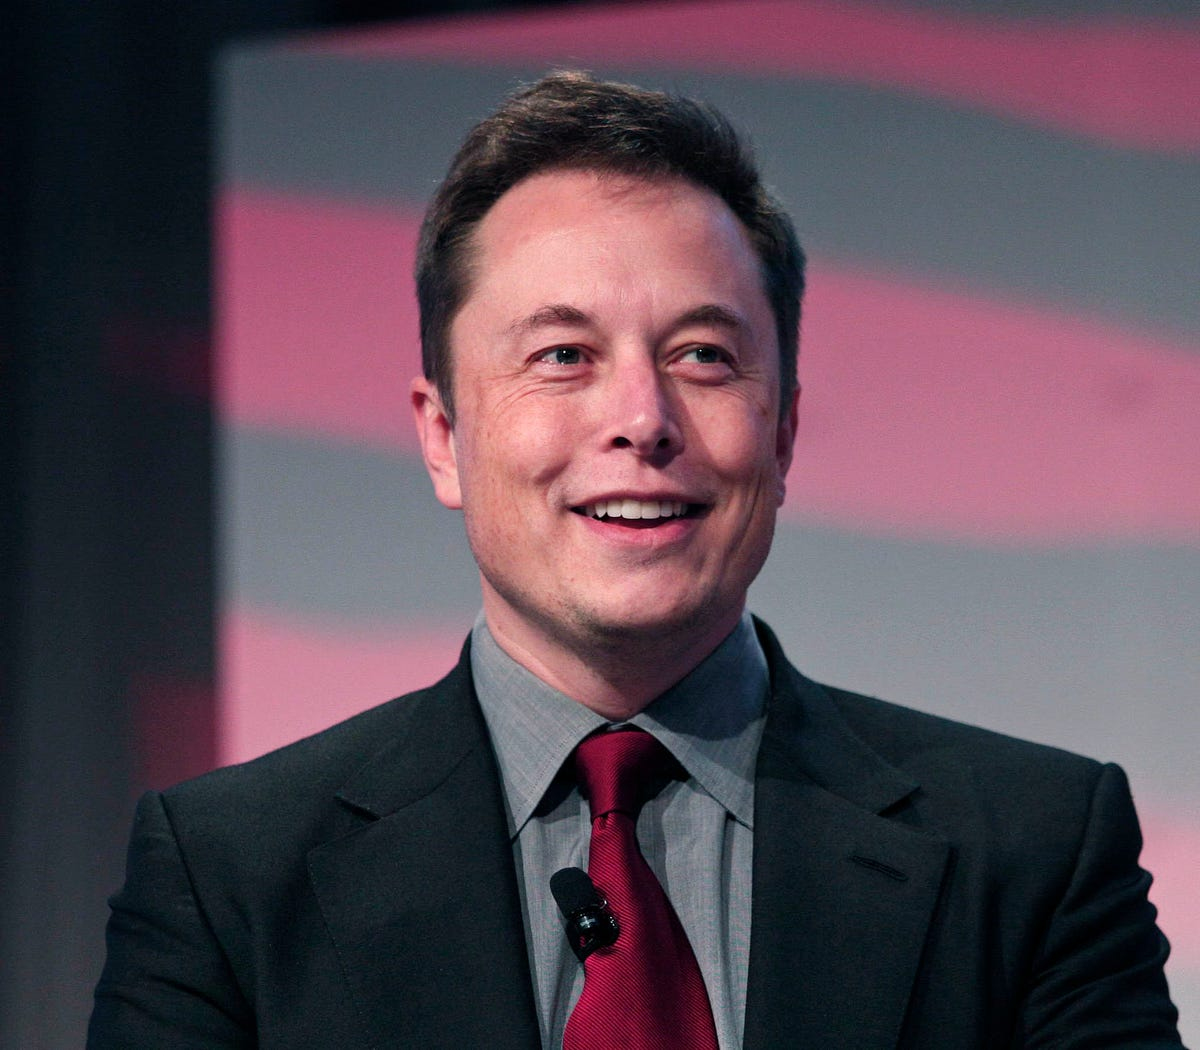 Elon Musk to pay for water stations in Flint schools